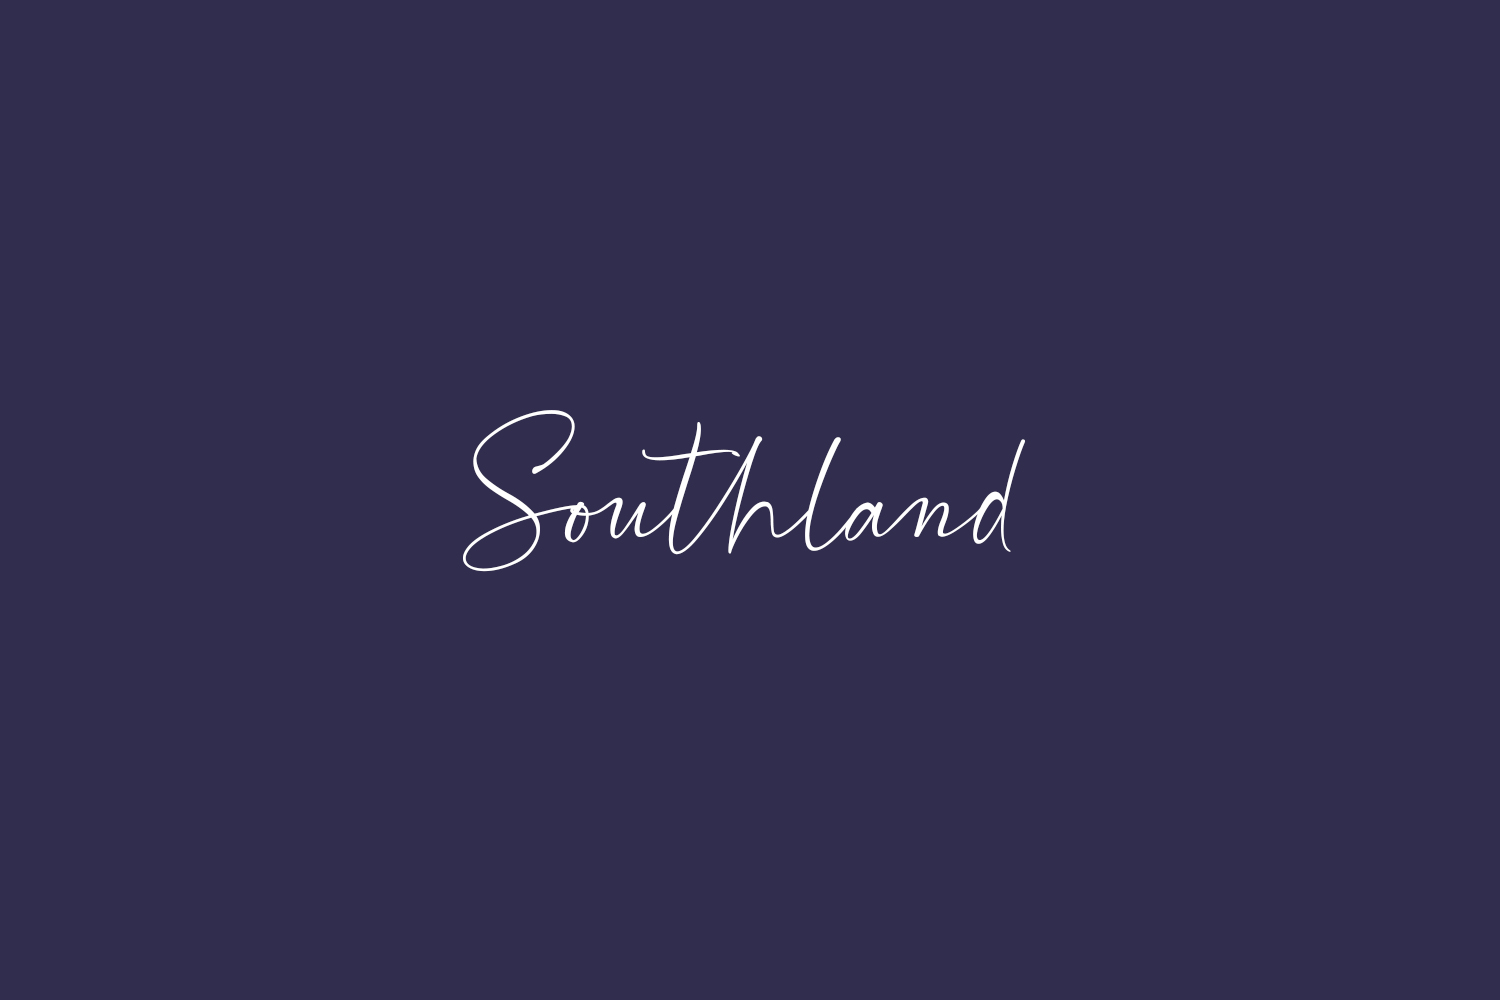 Southland Free Font